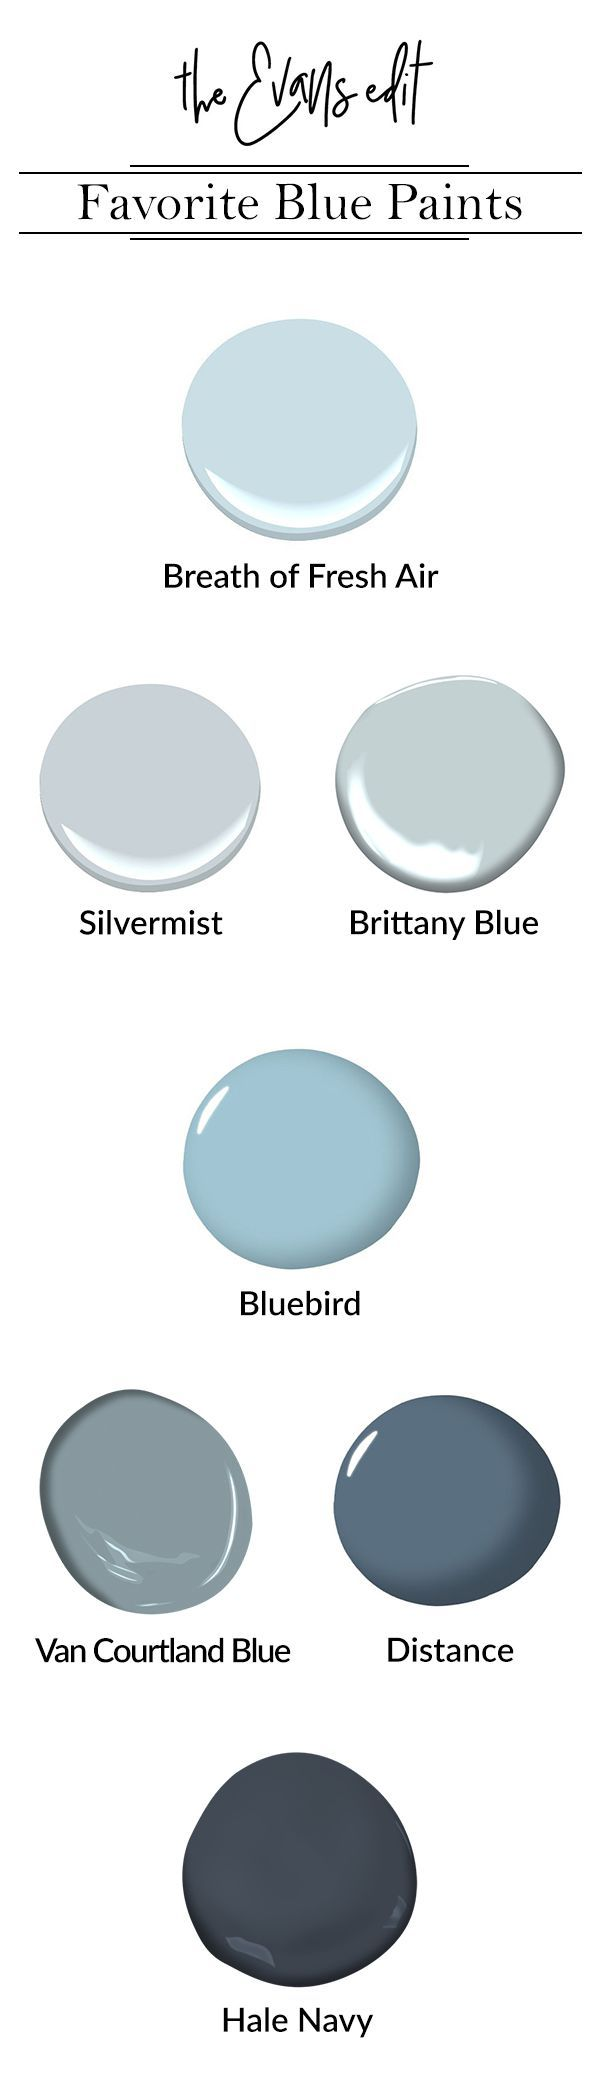 All Time Favorite Blue Paint Colors – The Evans Edit    Breath of Fresh Air 806 by Benjamin Moore, Silvermist SW7621 by Sherwin Williams, Brittany Blue 1633 by Benjamin Moore, Bluebird by Graham and Brown, Van Courtland Blue HC-145 by Benjamin Moore, Distance SW6243 by Sherwin Williams, and Hale Navy HC-154 by Benjamin Moore #halenavybenjaminmoore